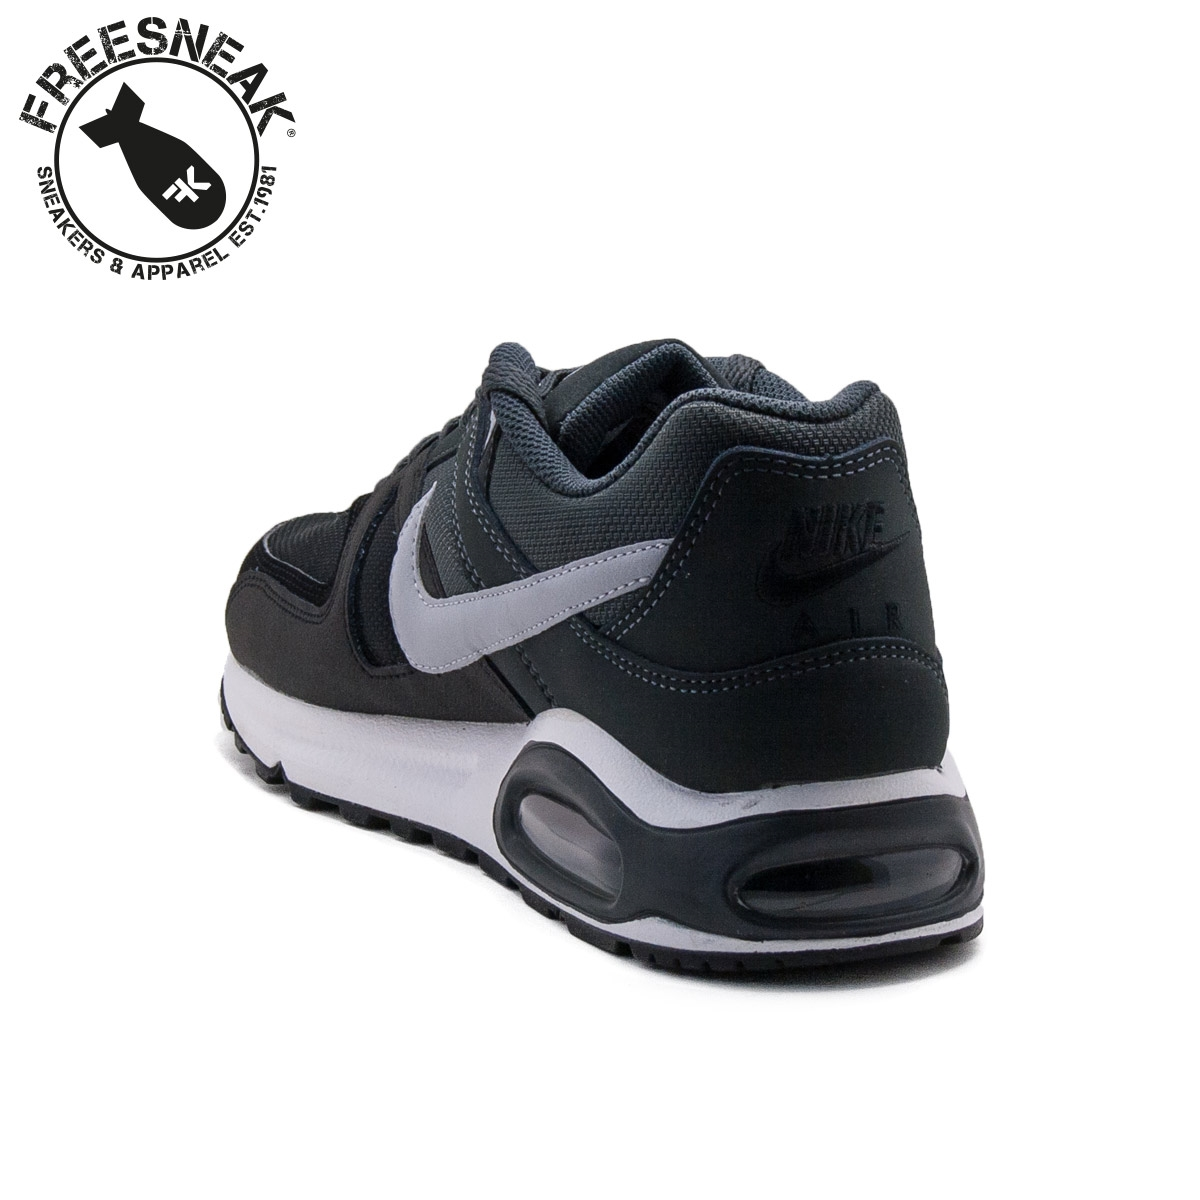 nike air max command grigie pack violet nike dunk. Black Bedroom Furniture Sets. Home Design Ideas